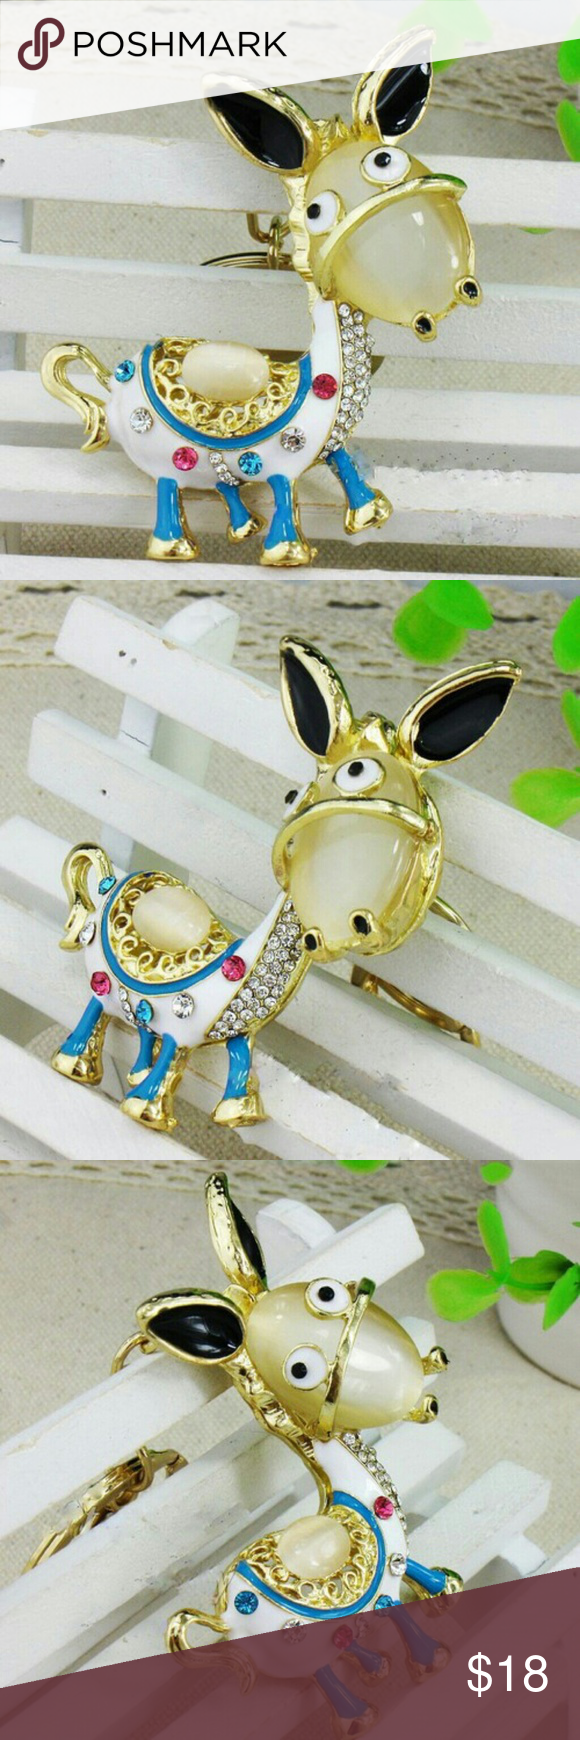 Dominic the Donkey Rhinestone Keychain Boutique (With